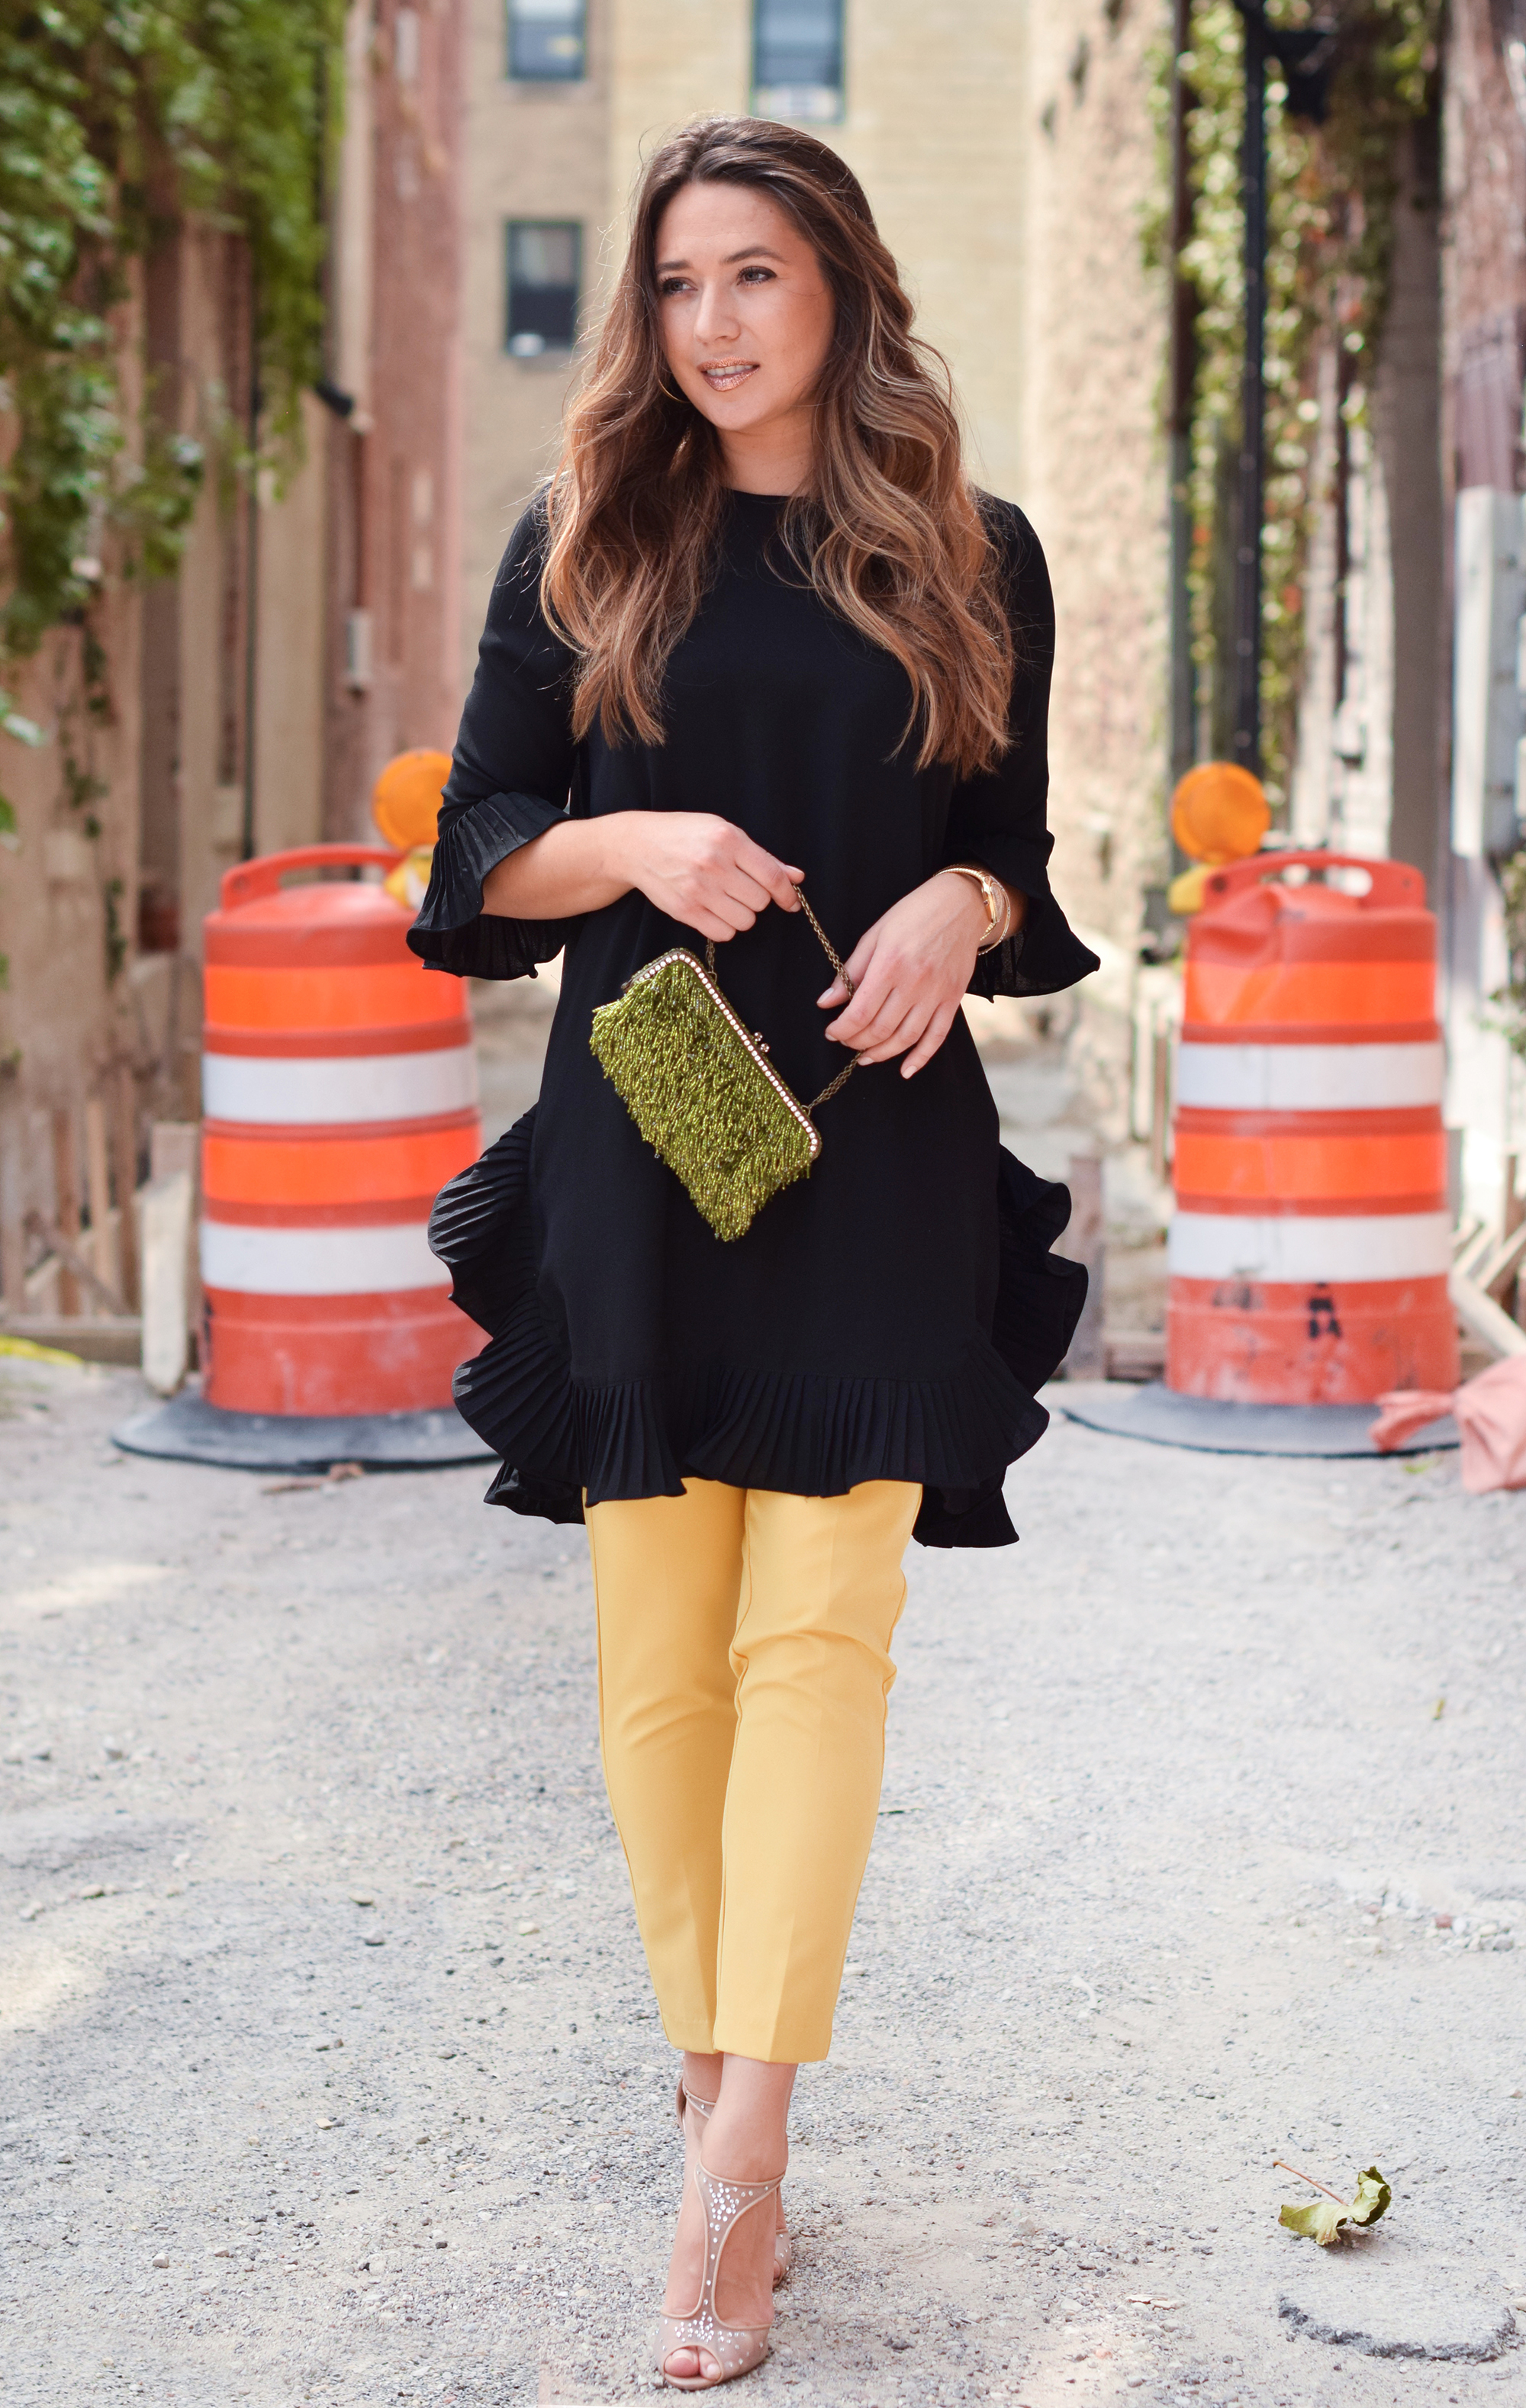 yellow-pants-black-dress-colorblock-outfit